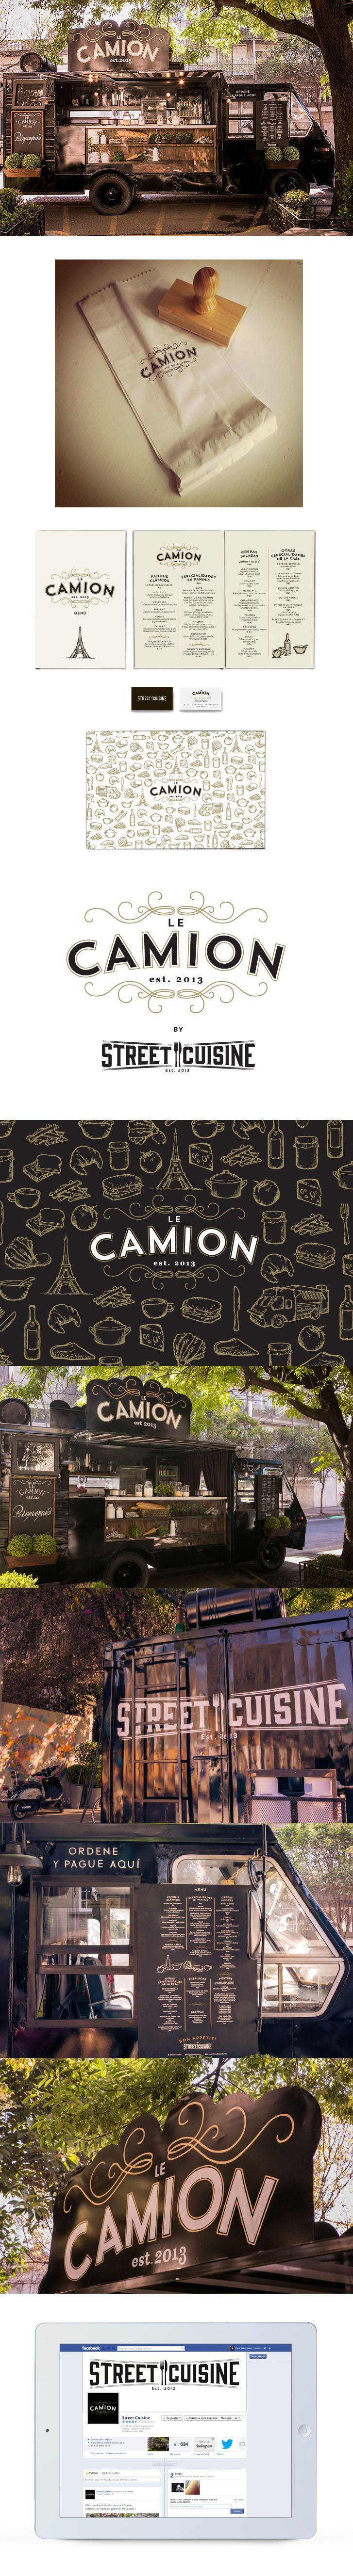 Le Camion on Behance                                                                                                                                                                                 More